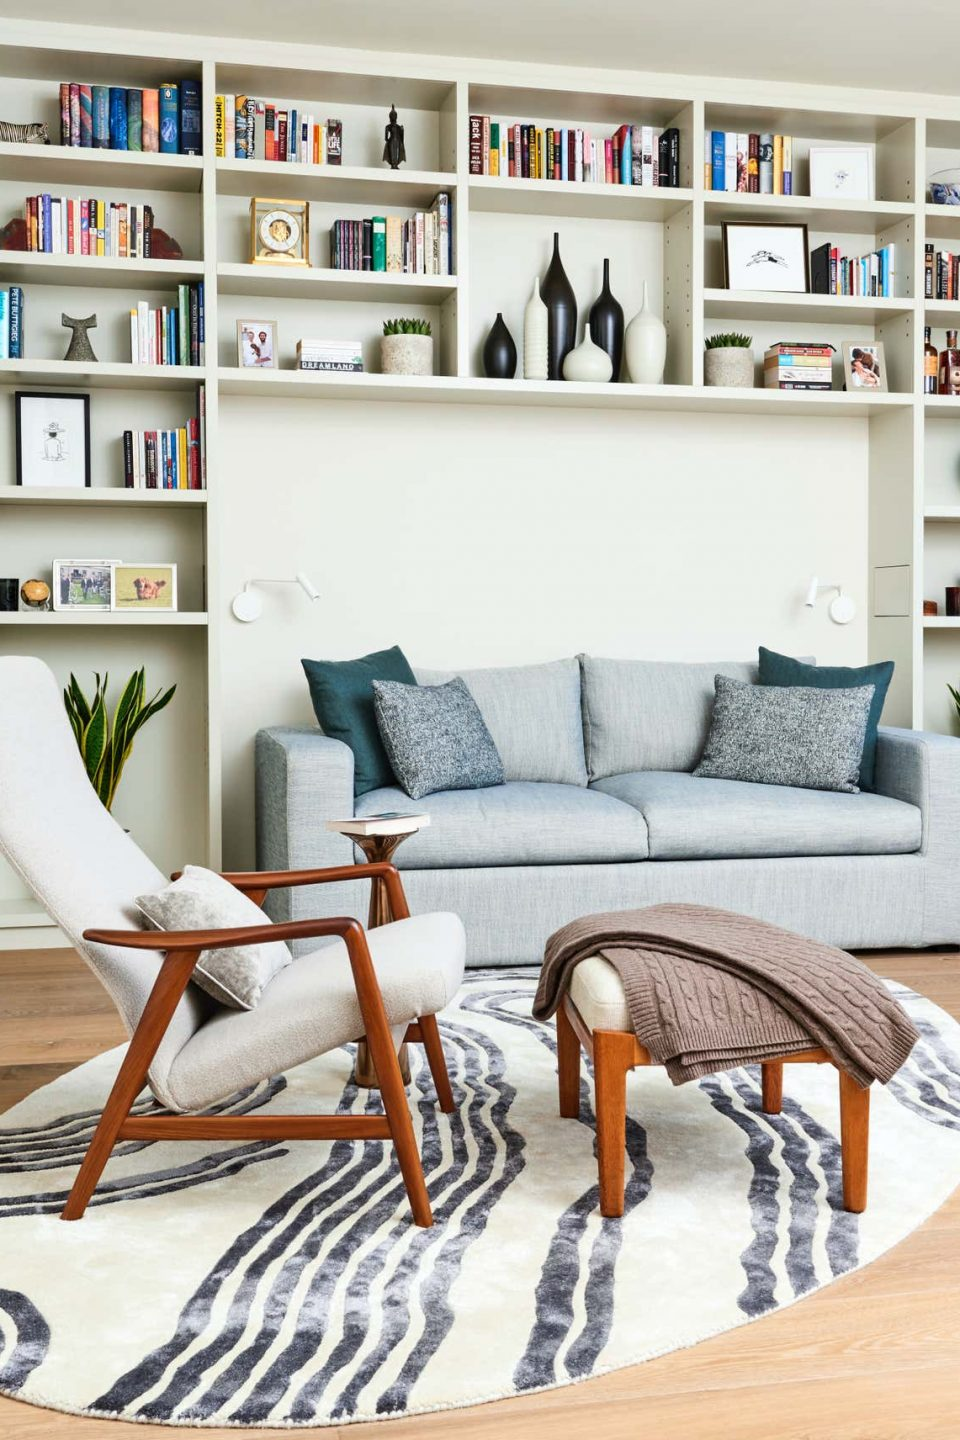 Rachel Laxer Specializes in Laid-Back Elegance